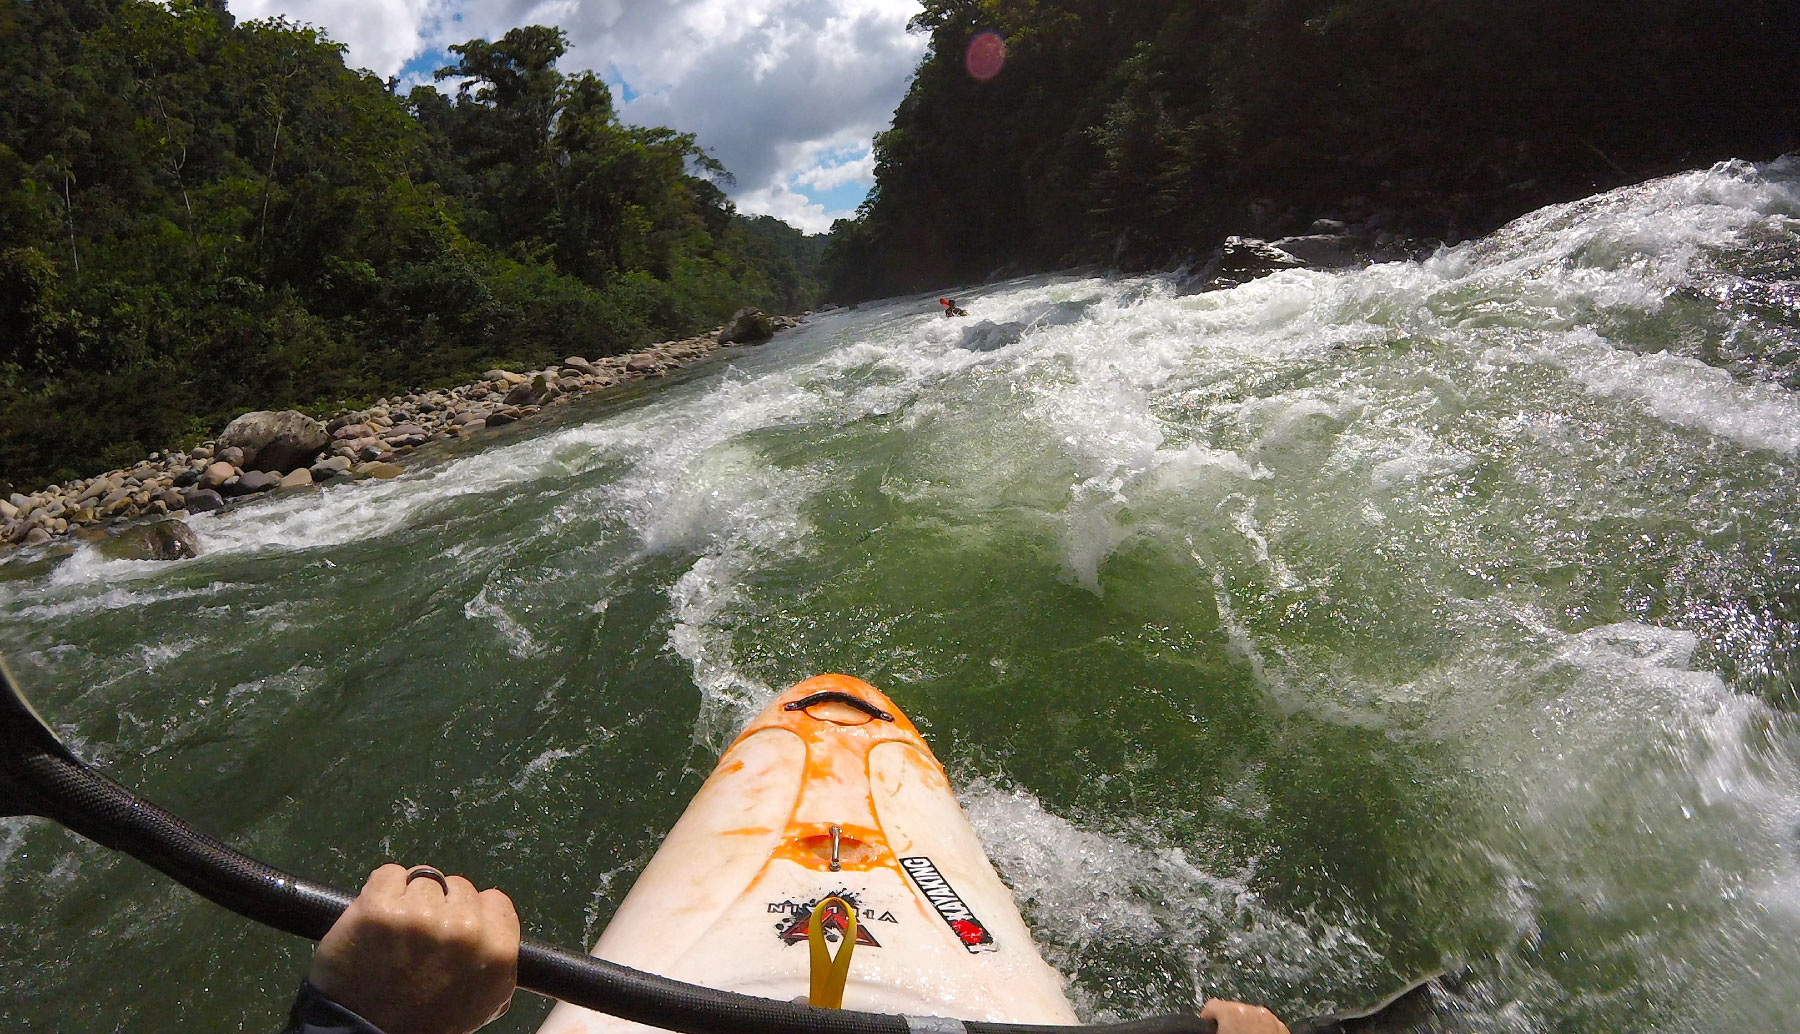 Kayaking view of a river in Ecuador